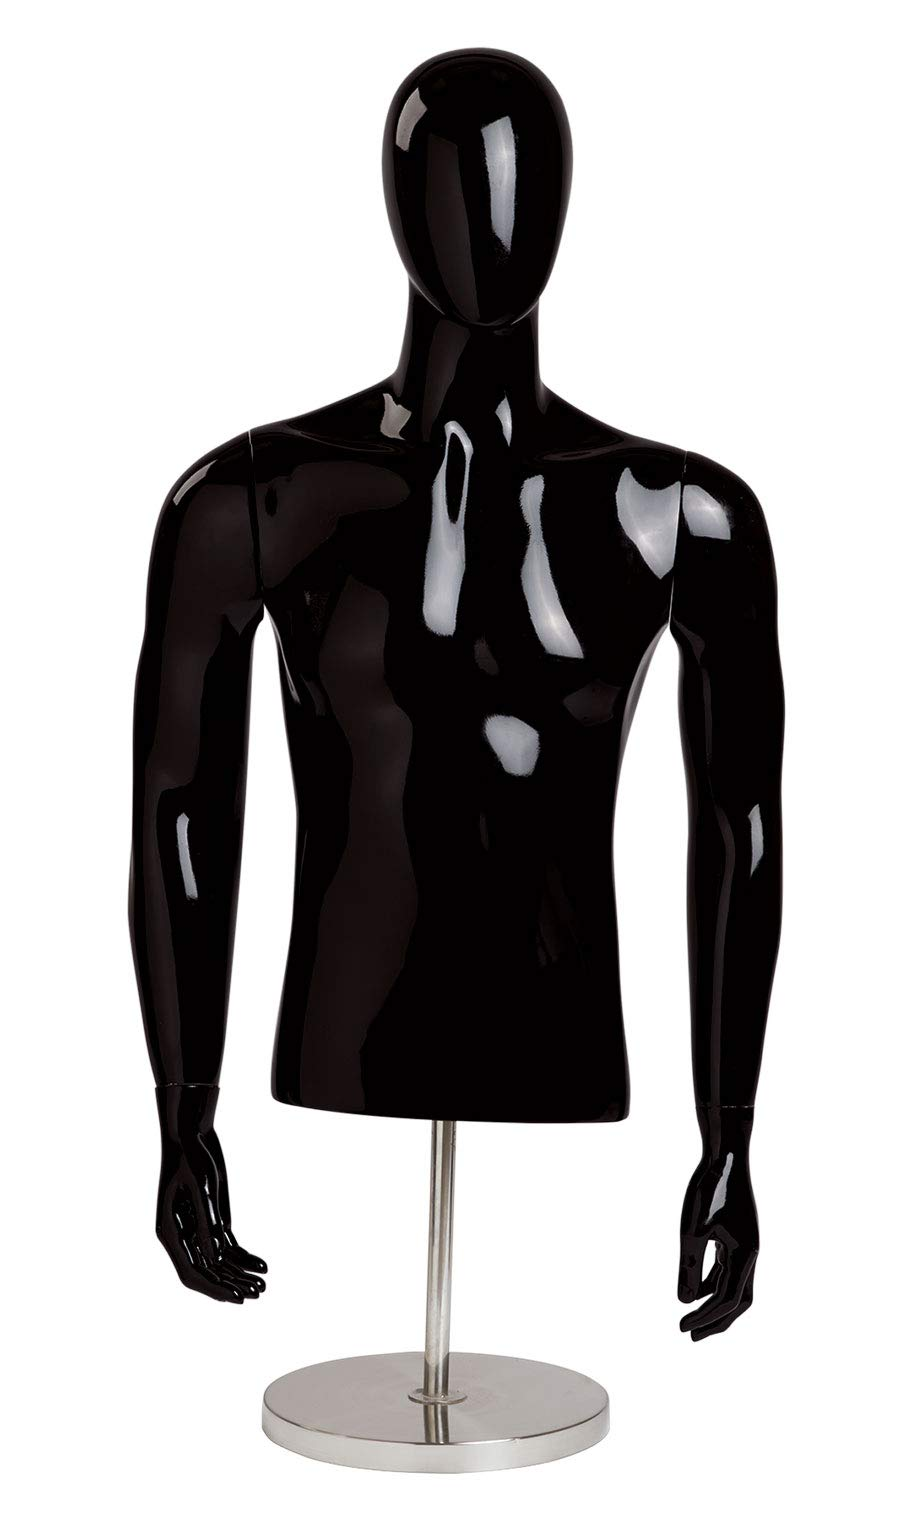 Male Glossy Black ½ Body Mannequin - with Base - 54''''H